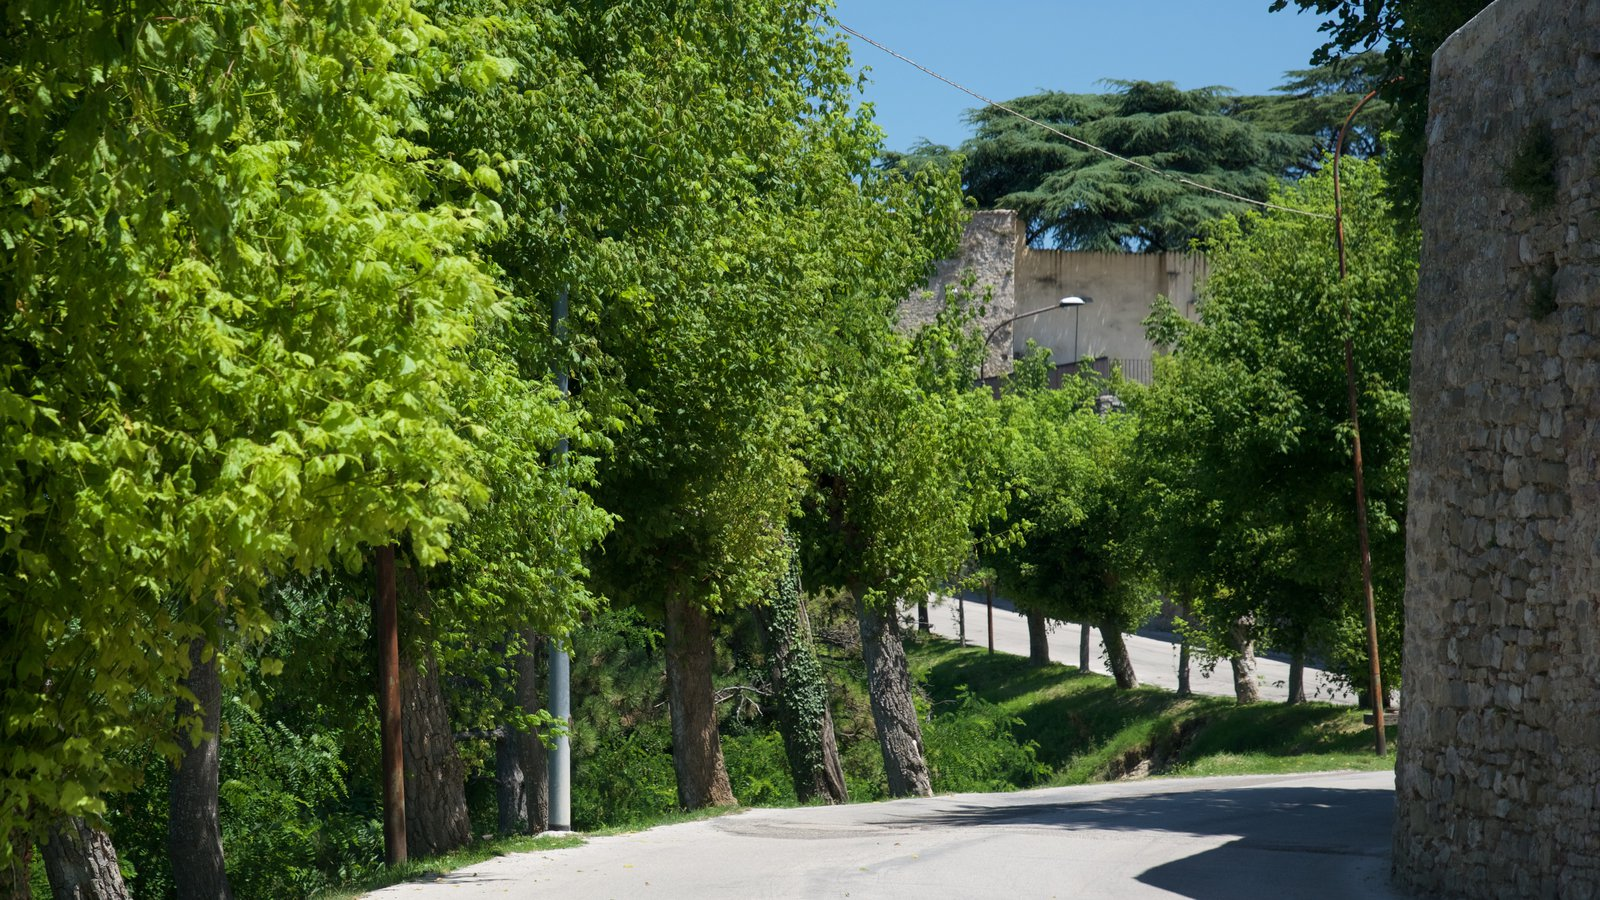 Montefalco which includes a small town or village